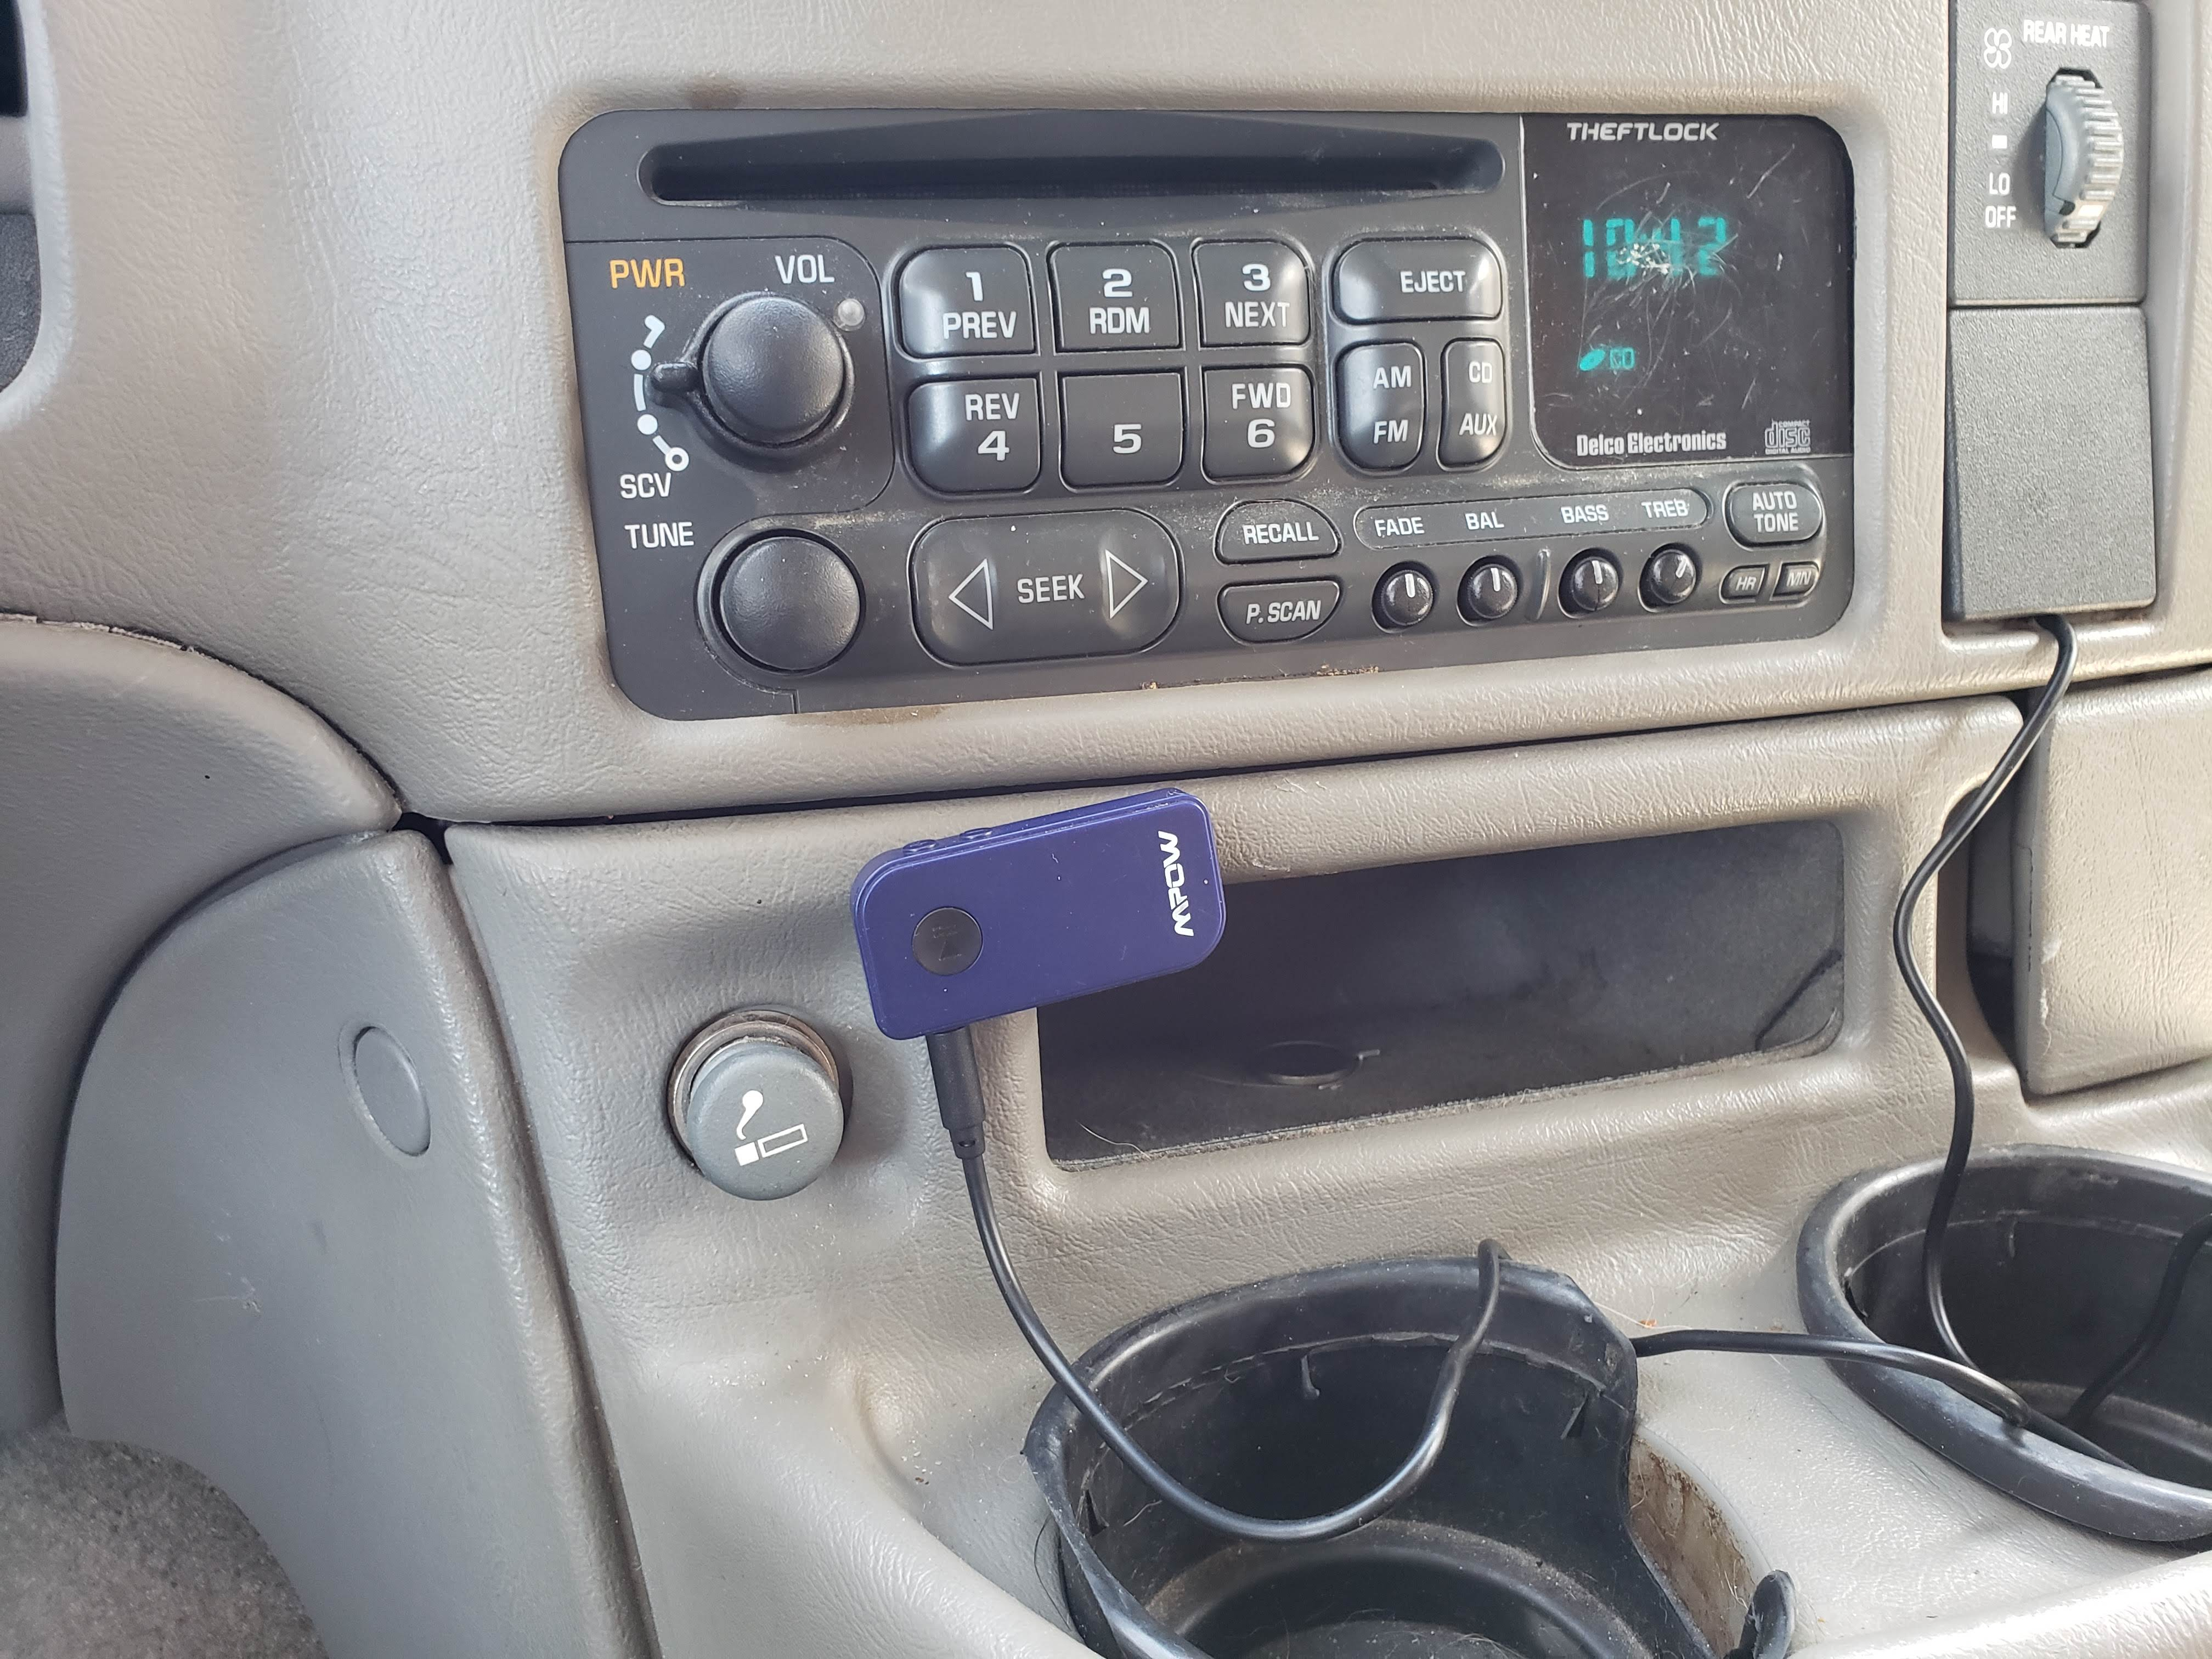 $3 - 2003 Factory Radio AUX inpu...